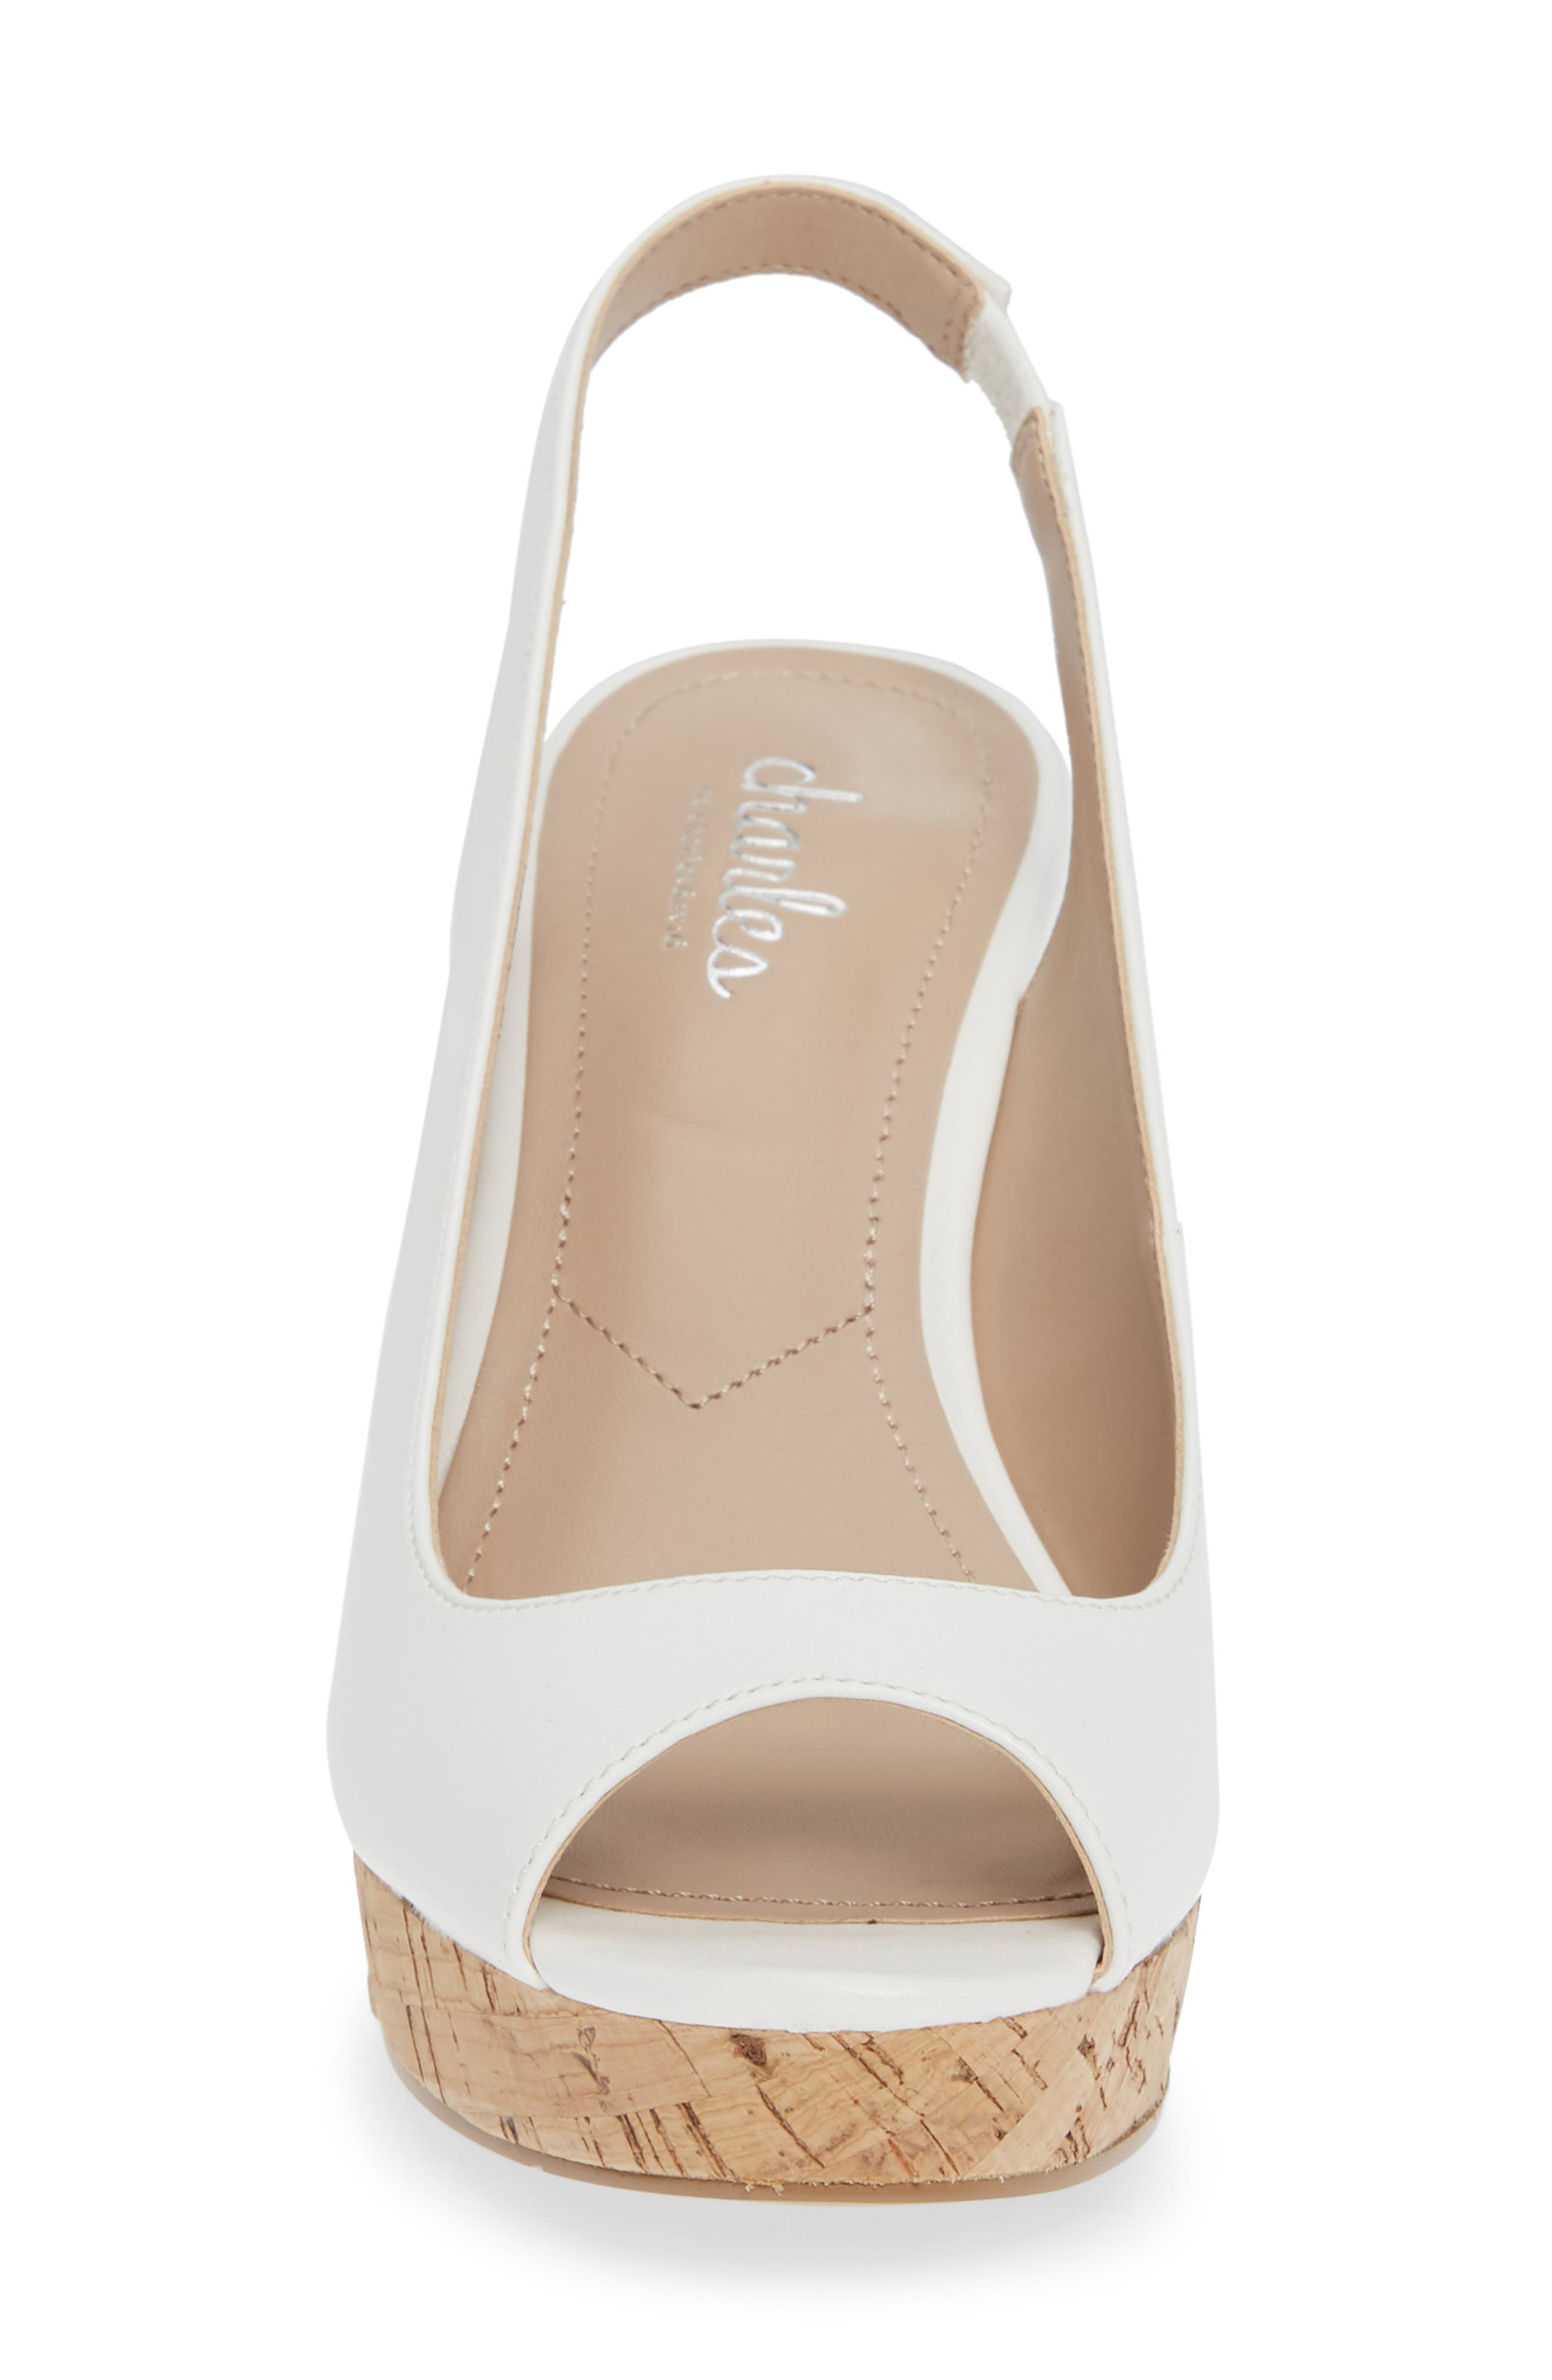 CHARLES BY CHARLES DAVID, Leandra Slingback Wedge, Alternate thumbnail 4, color, 100